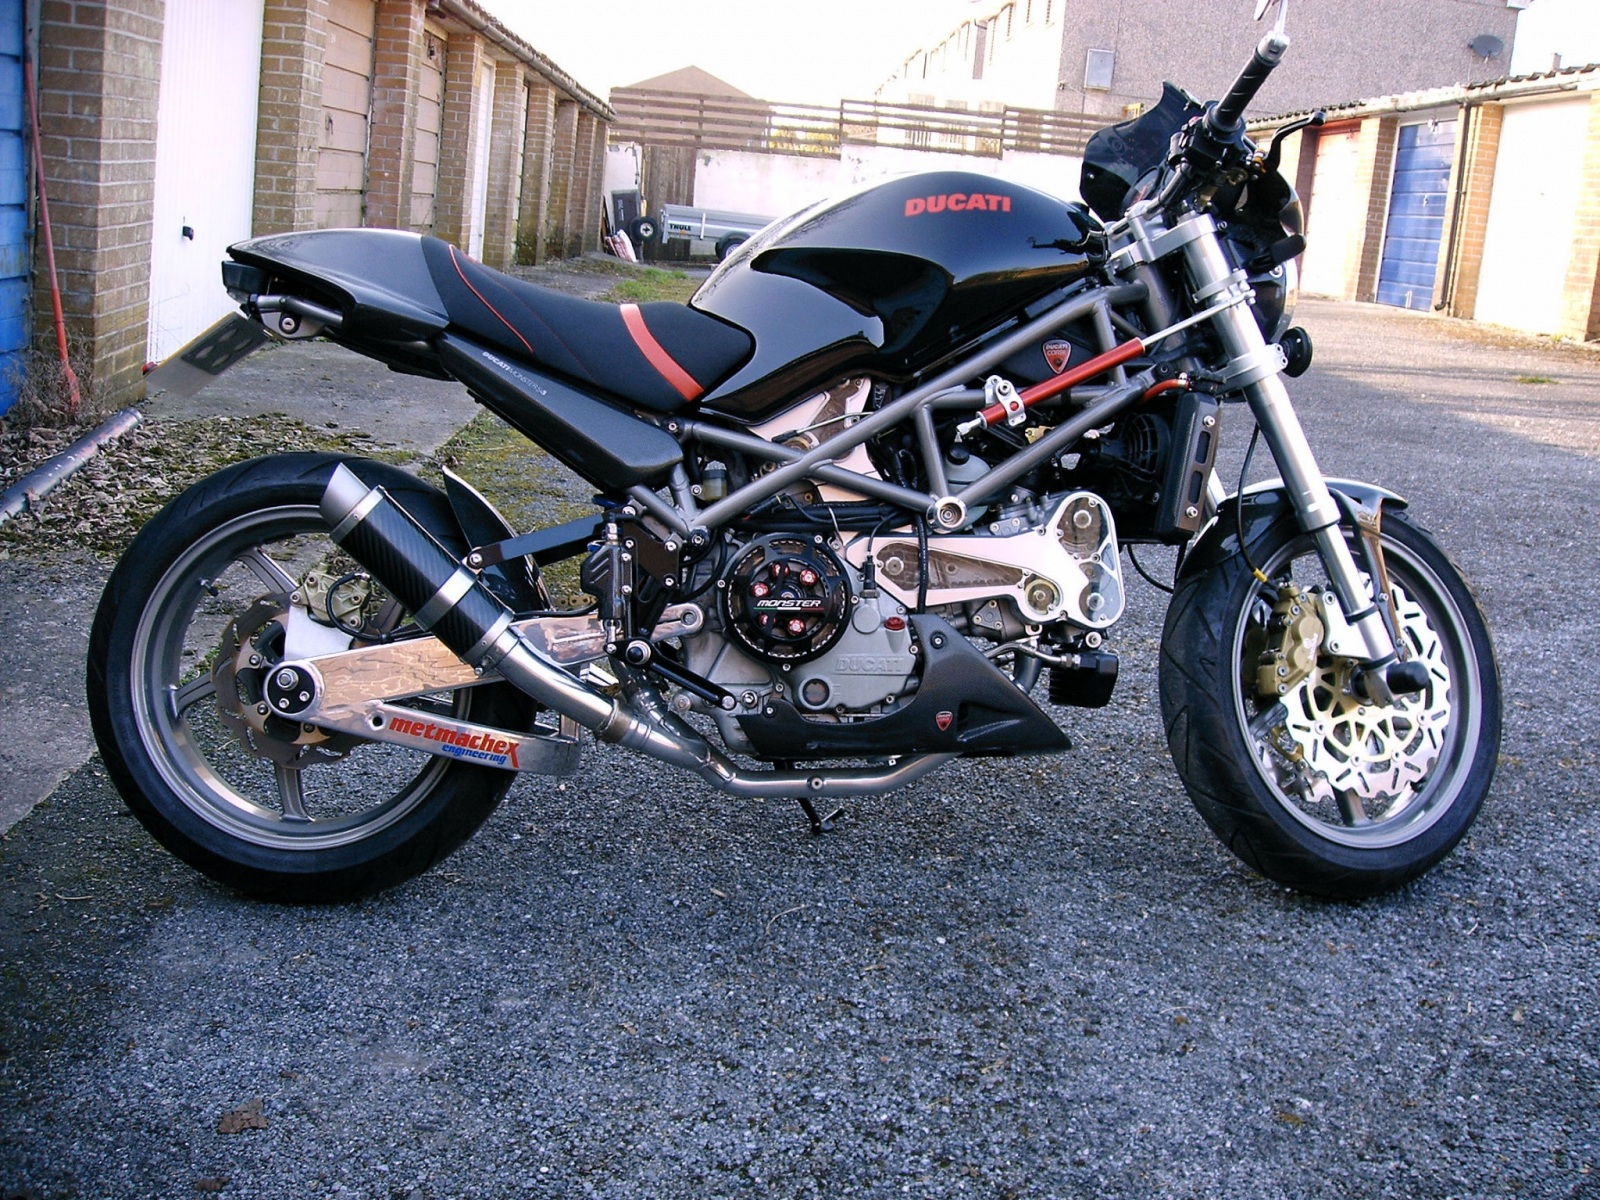 """Ducati Monster S4 2001-2007 <p>A16 Moto GP Carbon Exhausts with Titanium Type Outlets</p><br/><a href=""""https://a16roadnracesupplies.co.uk/product/a16-ducati-exhausts/"""">Buy now!</a>"""